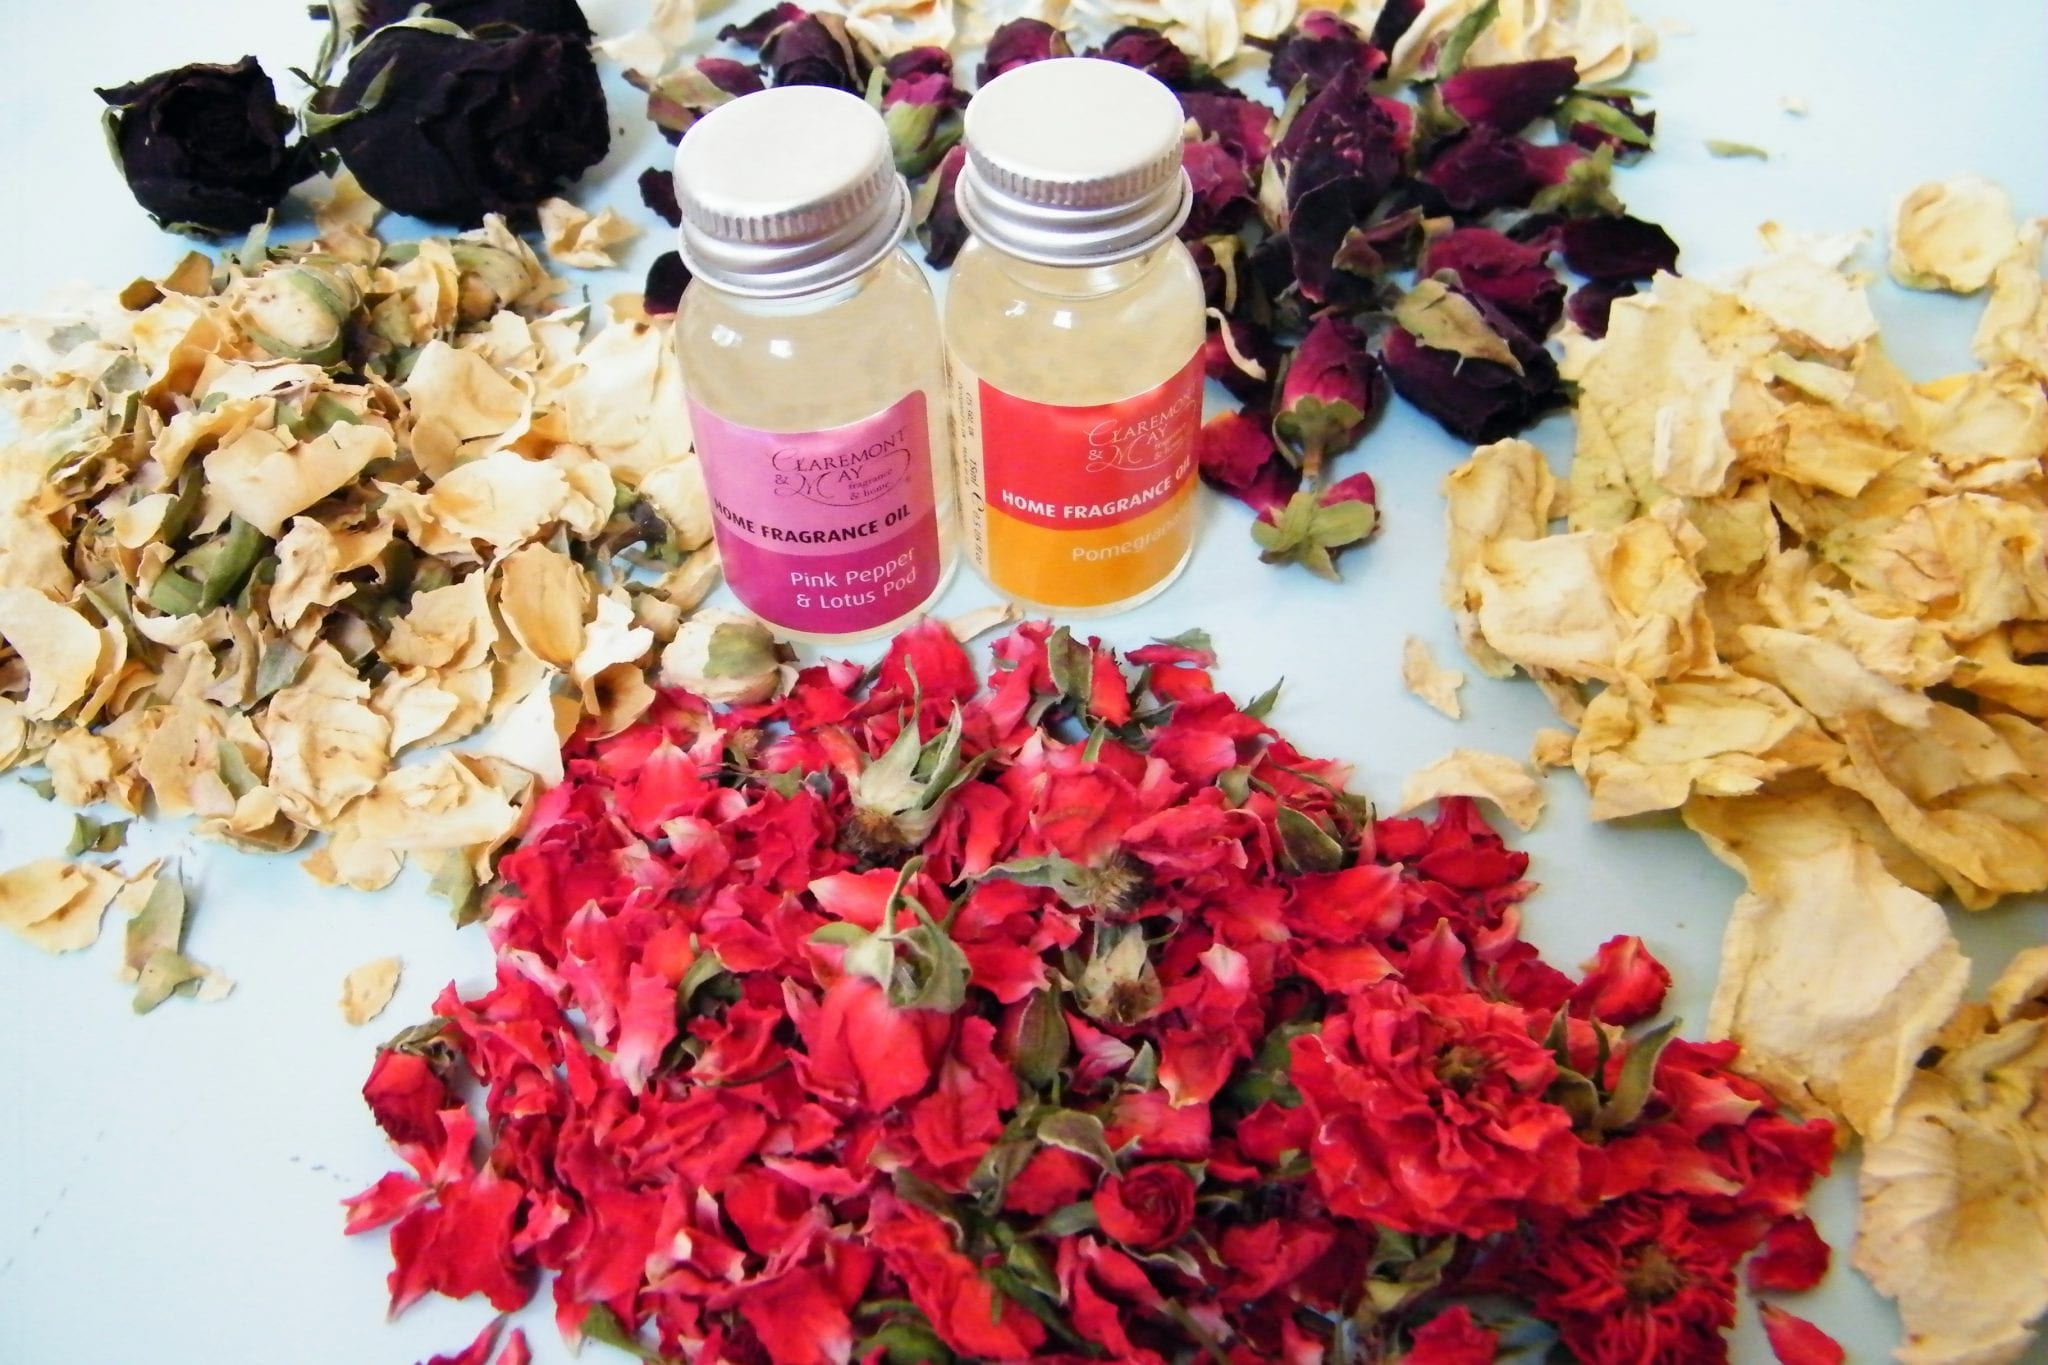 sweetheart potpourri dried ingredients fragrance oil